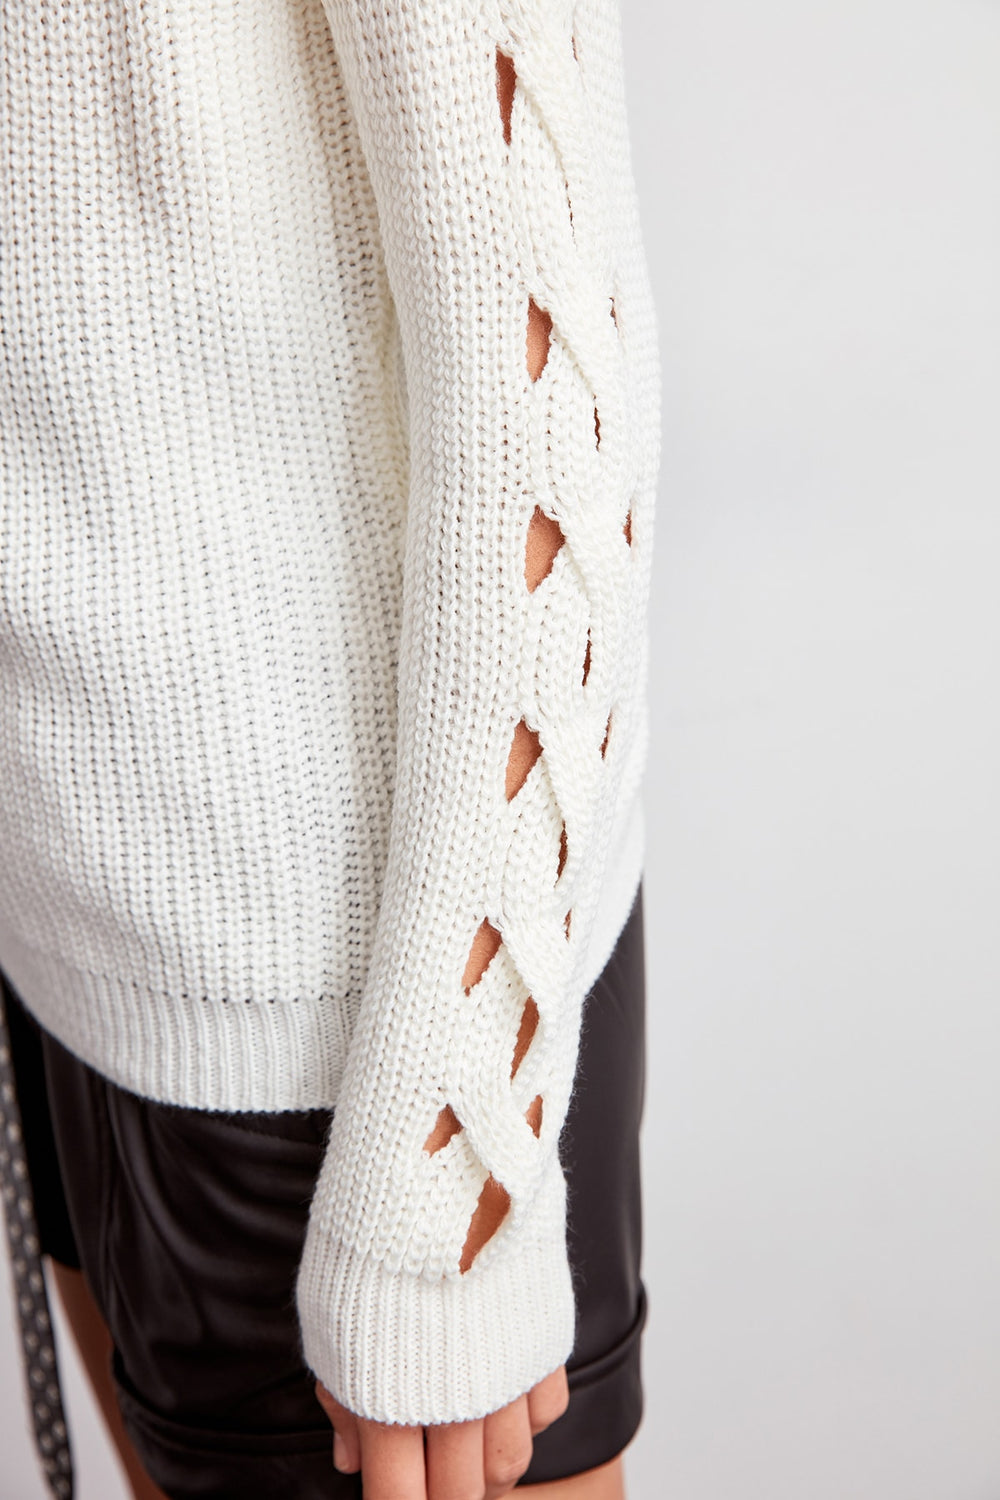 WOMEN-Raw White Sleeve Detail Sweater - Top Maxy